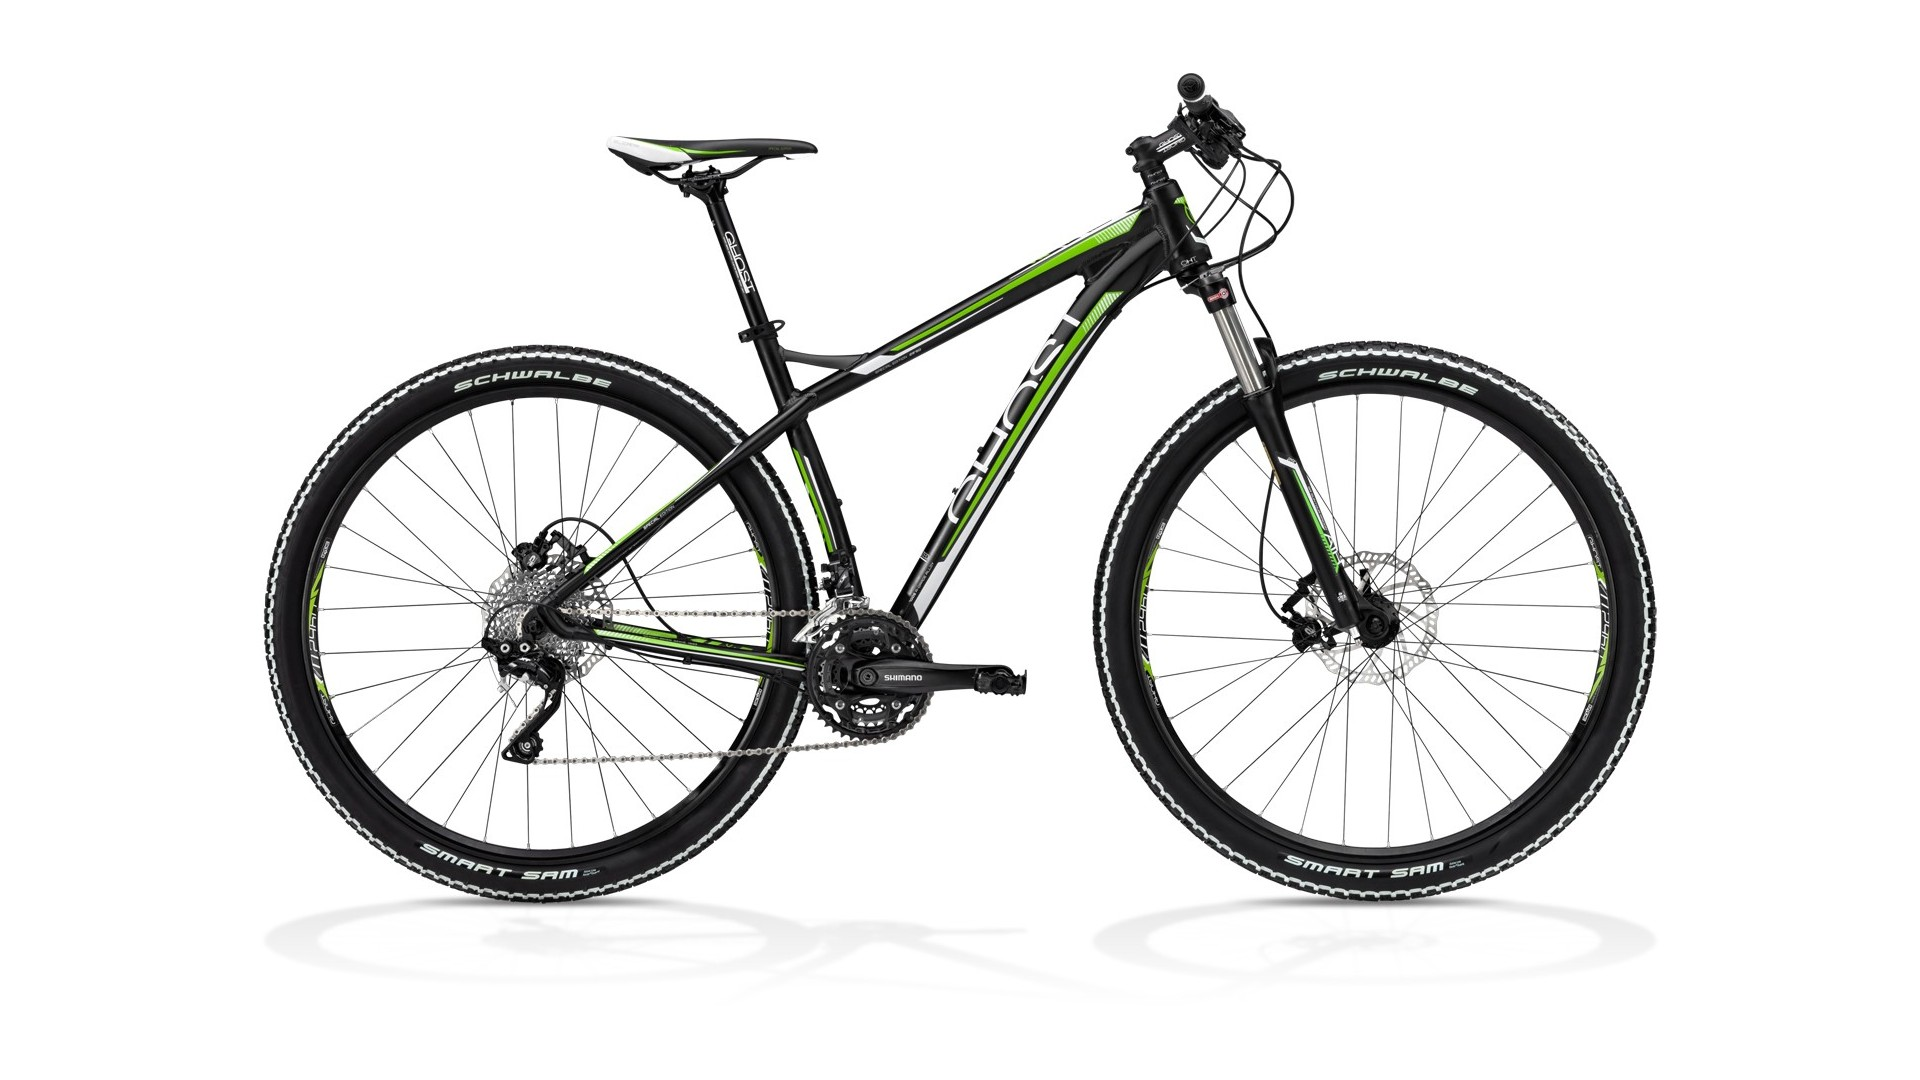 Велосипед GHOST SE 2950 black/white/green год 2013